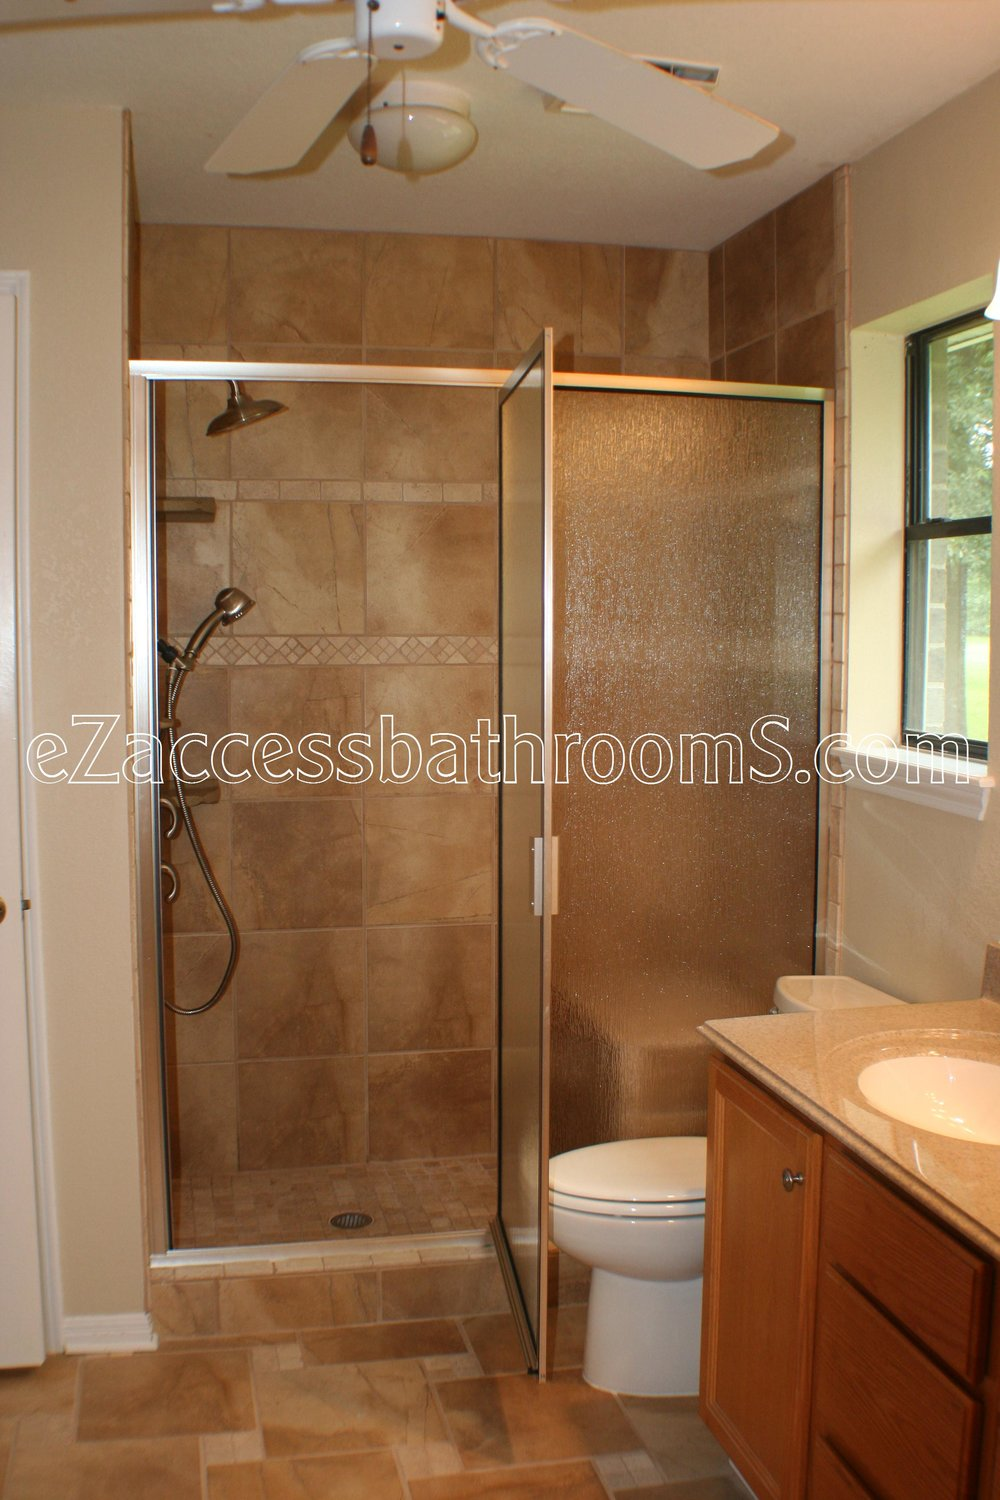 SENIOR FRIENDLY BATHROOMS EZACCESSBATHROOMS.COM 832202843 MYREN; 015.JPG